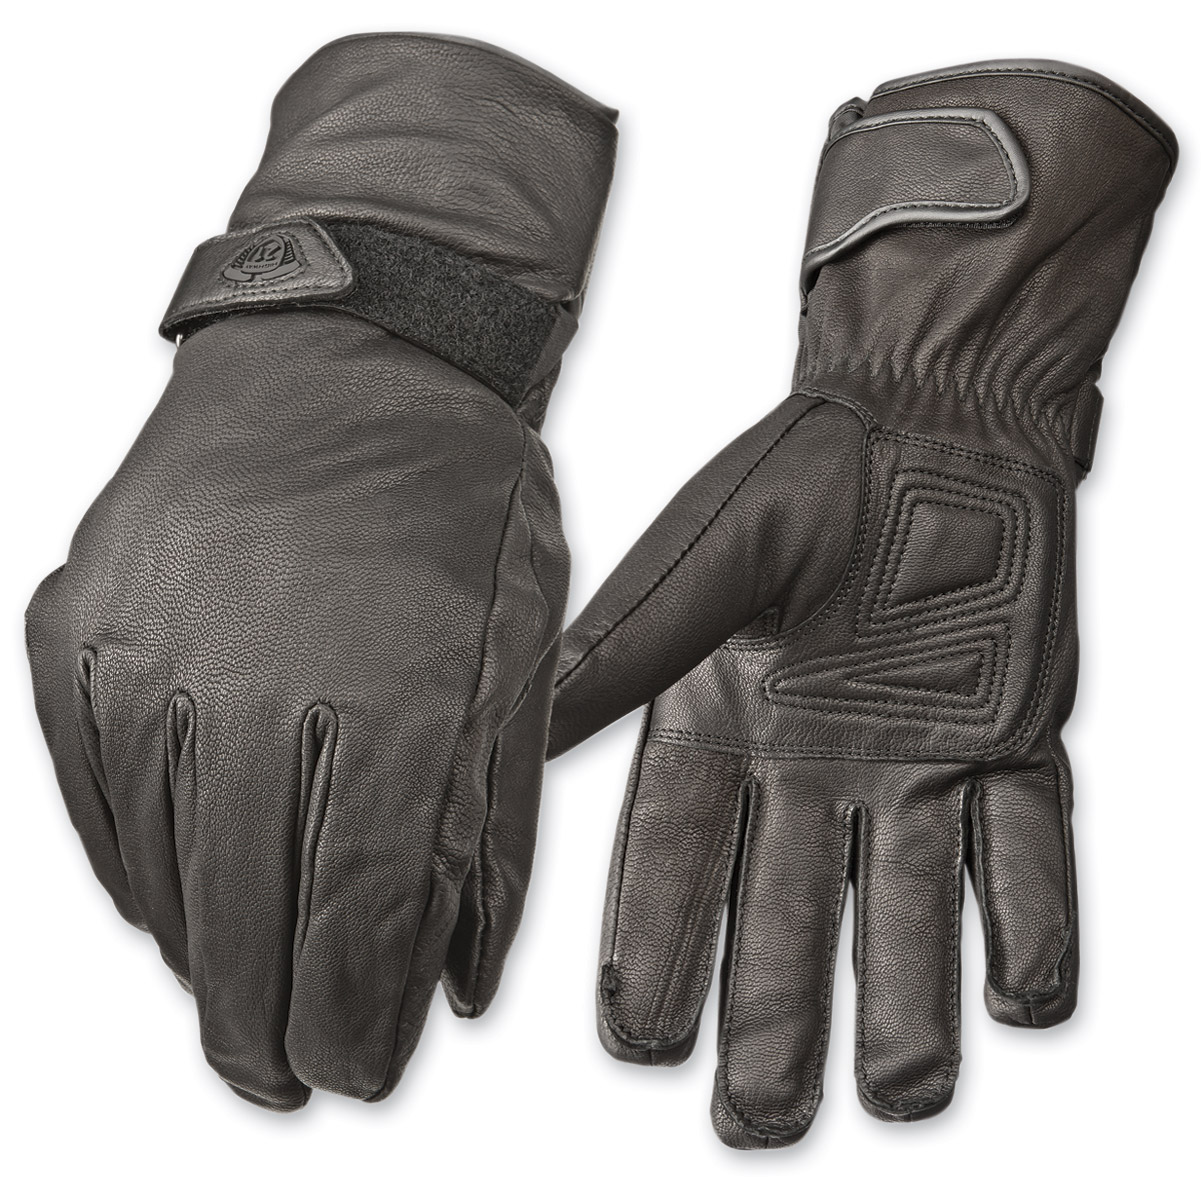 8094409cd322c Highway 21 Men's Granite Black Leather Gloves - 5841 489-0020-2 ...